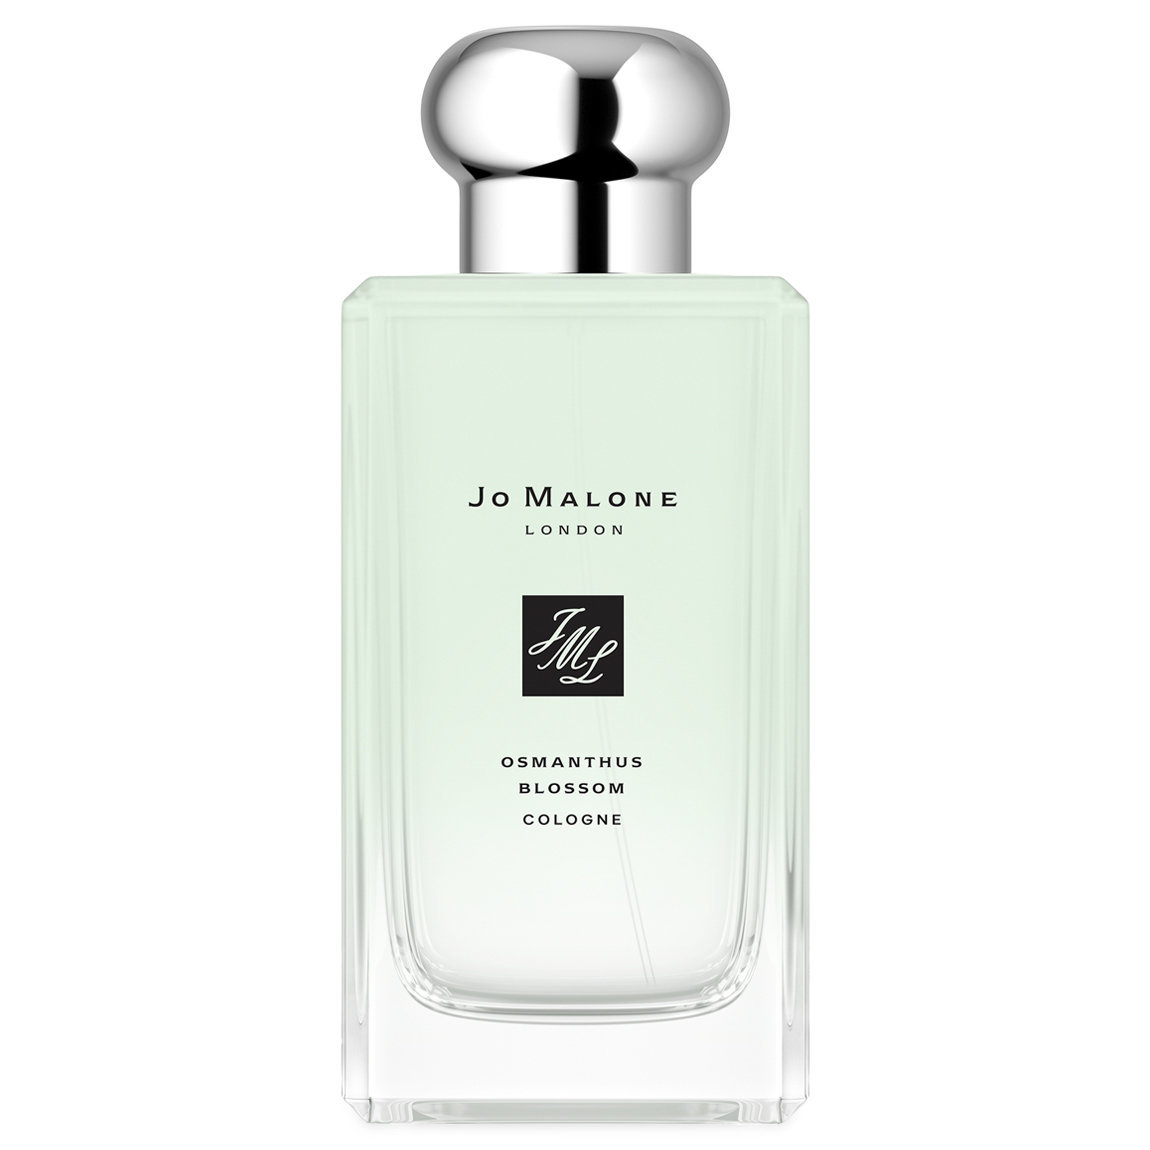 Jo Malone London Osmanthus Blossom Cologne 100 ml alternative view 1 - product swatch.